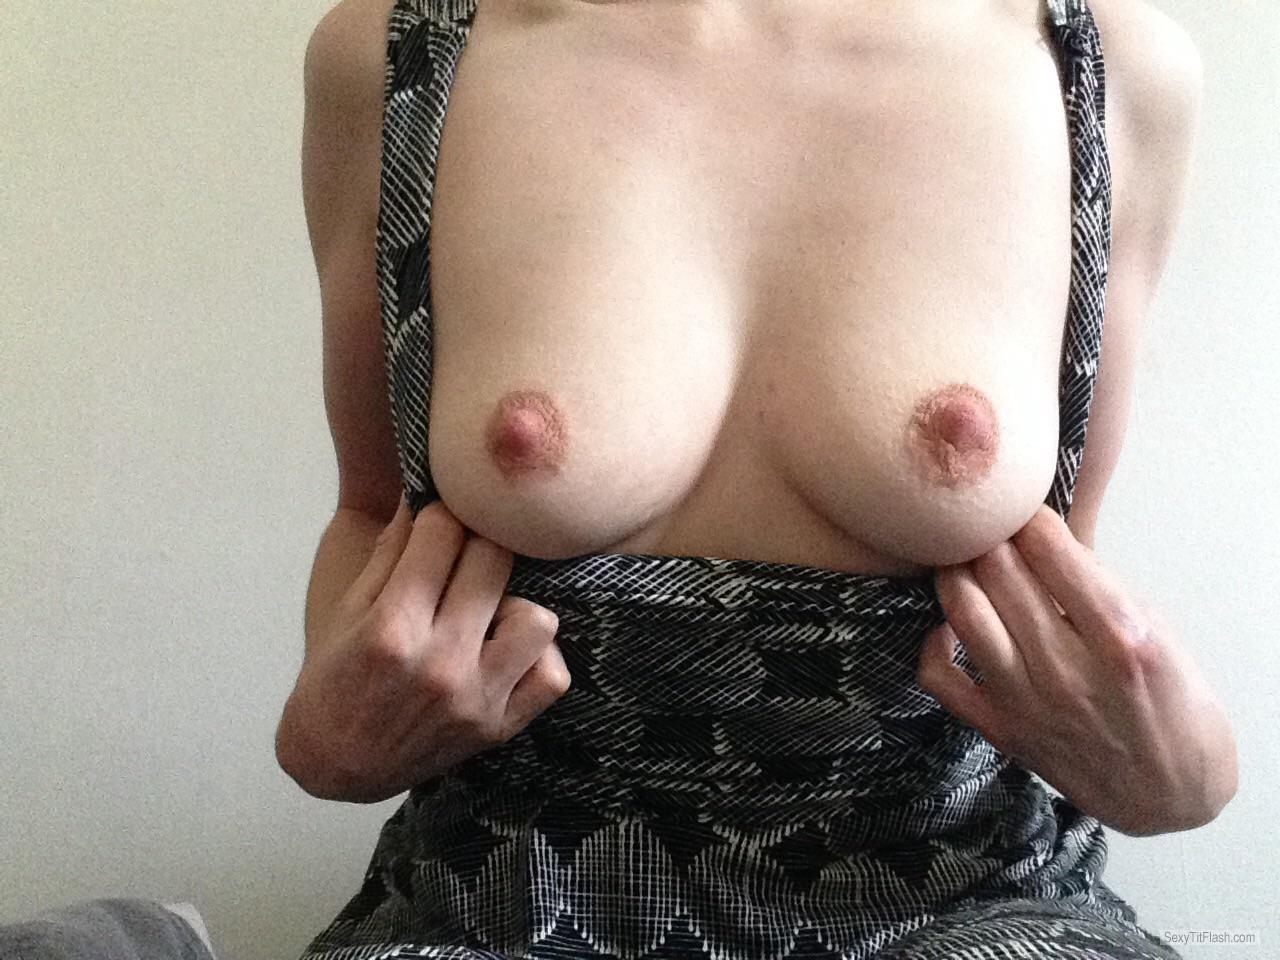 My Medium Tits Selfie by Anna